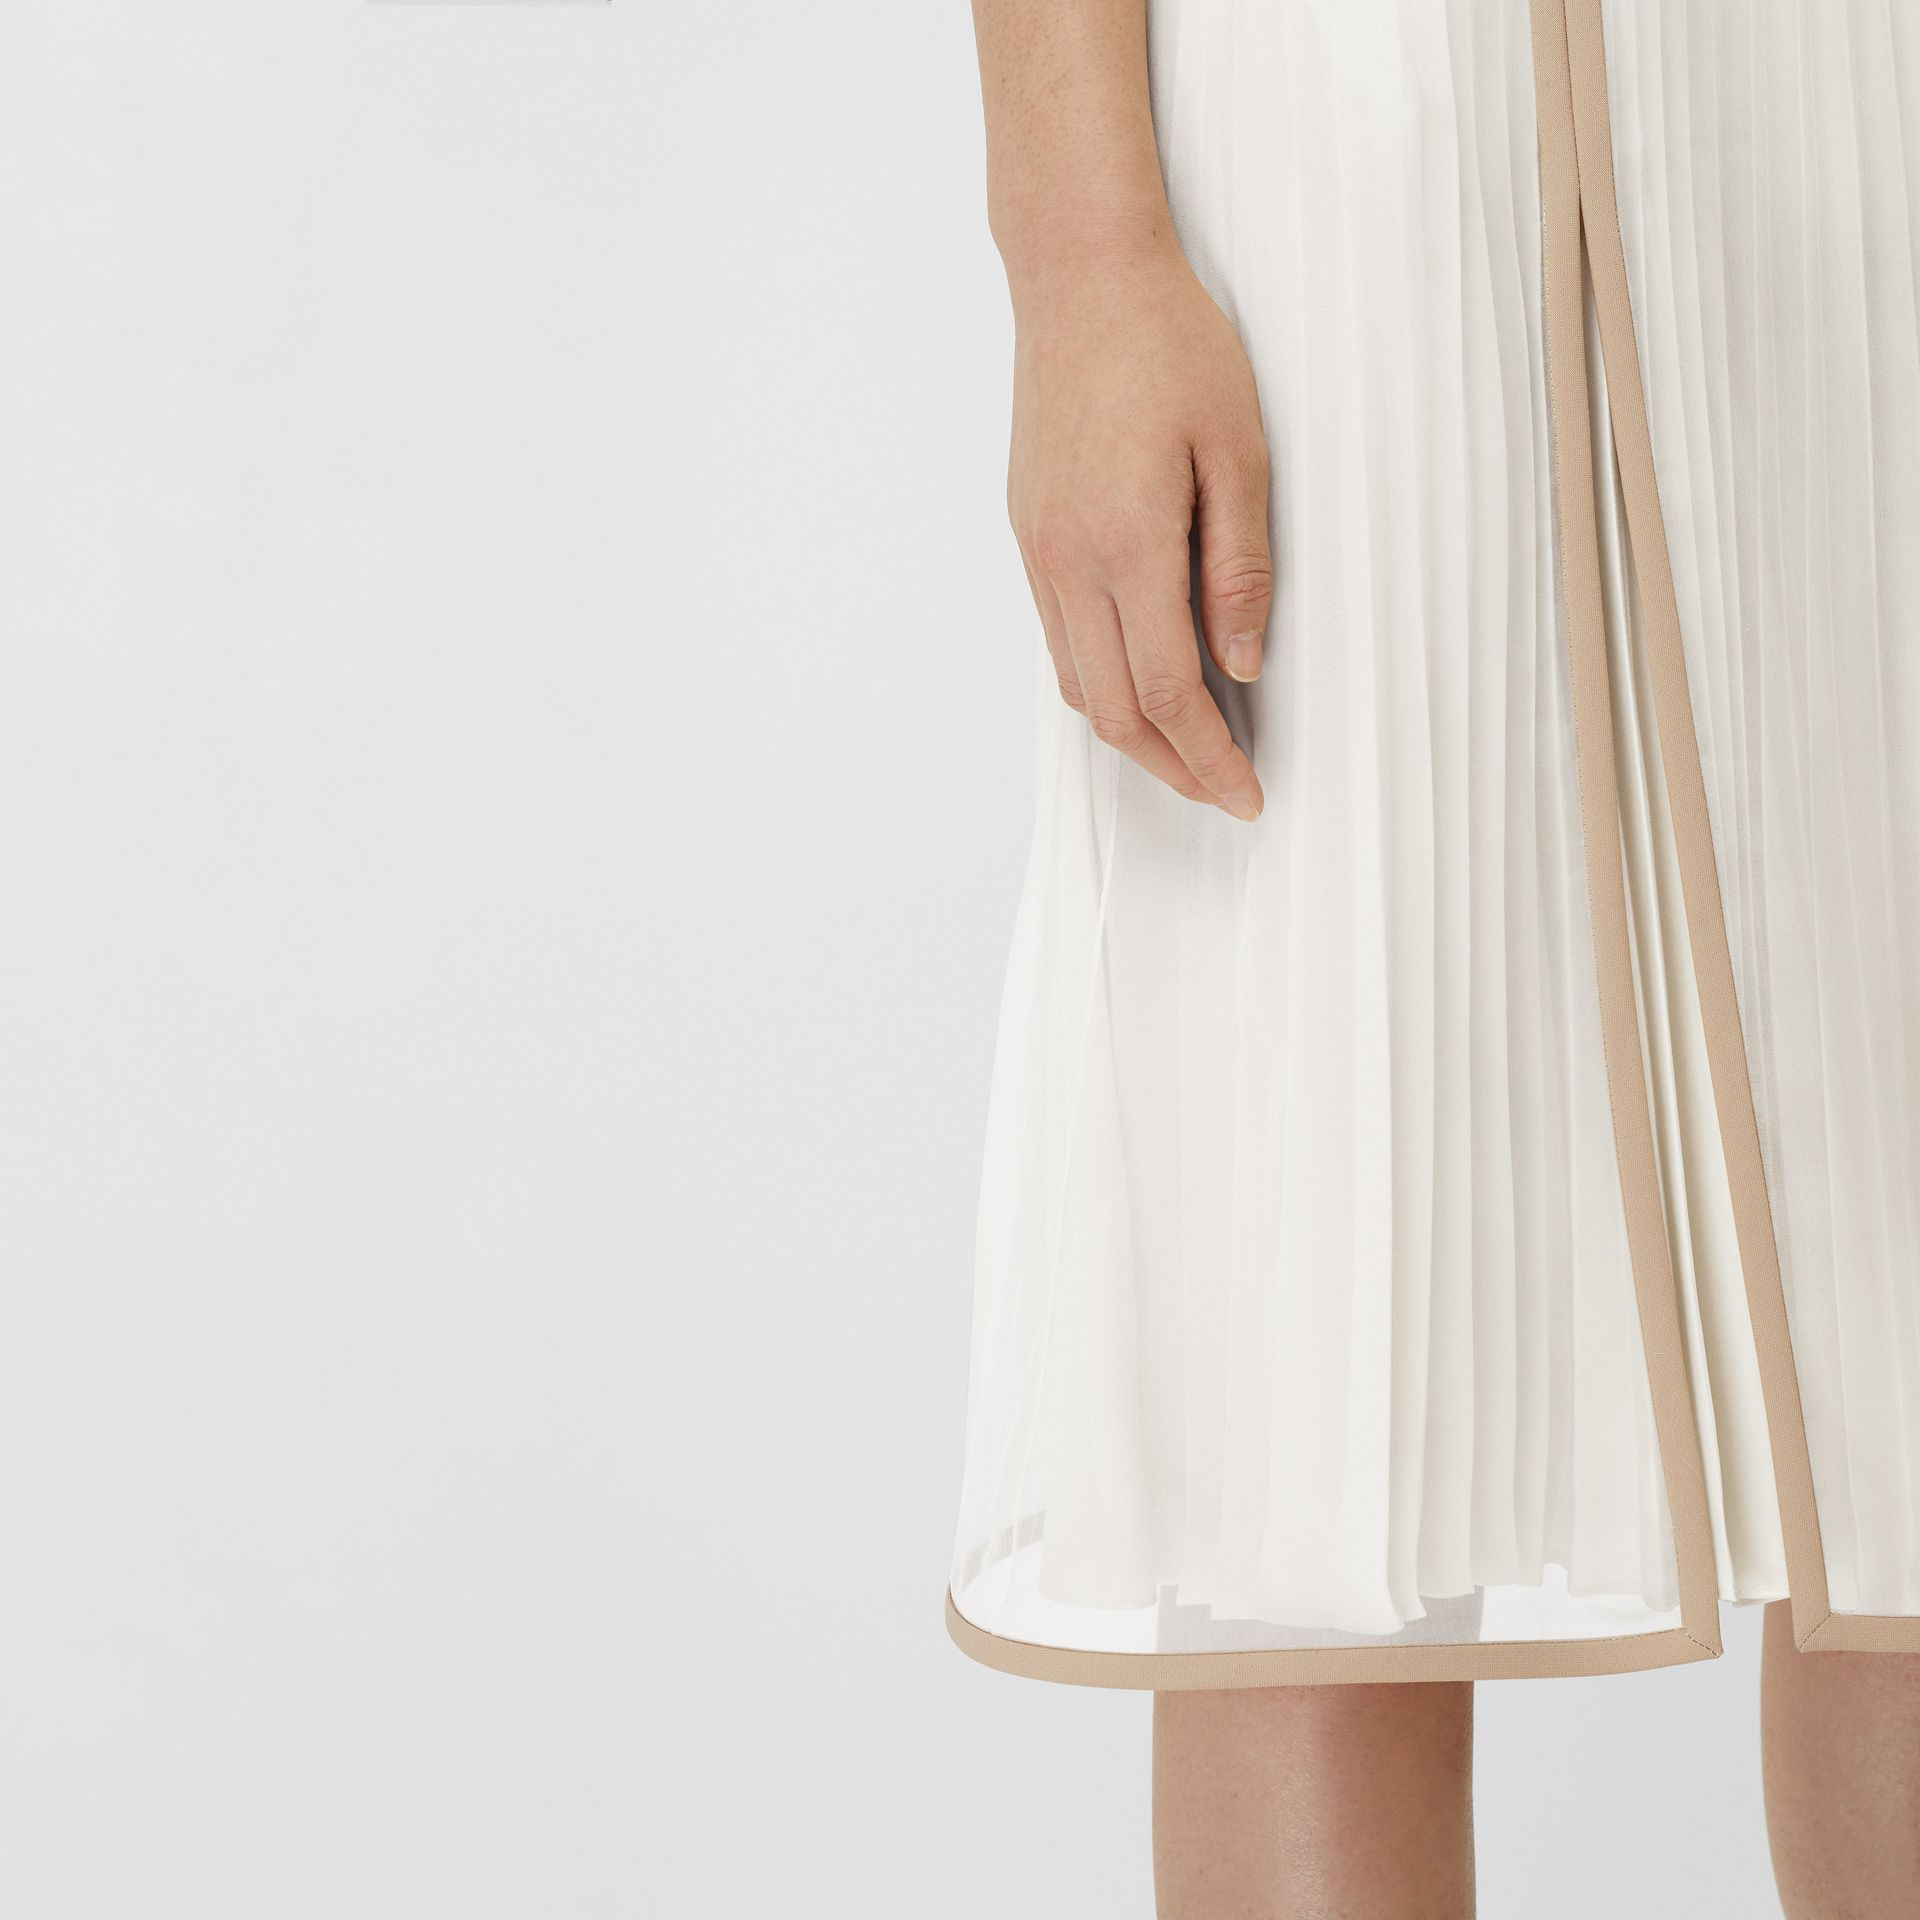 Chiffon Panel Silk Pleated Skirt in Magnolia - Women | Burberry Hong Kong - gallery image 1